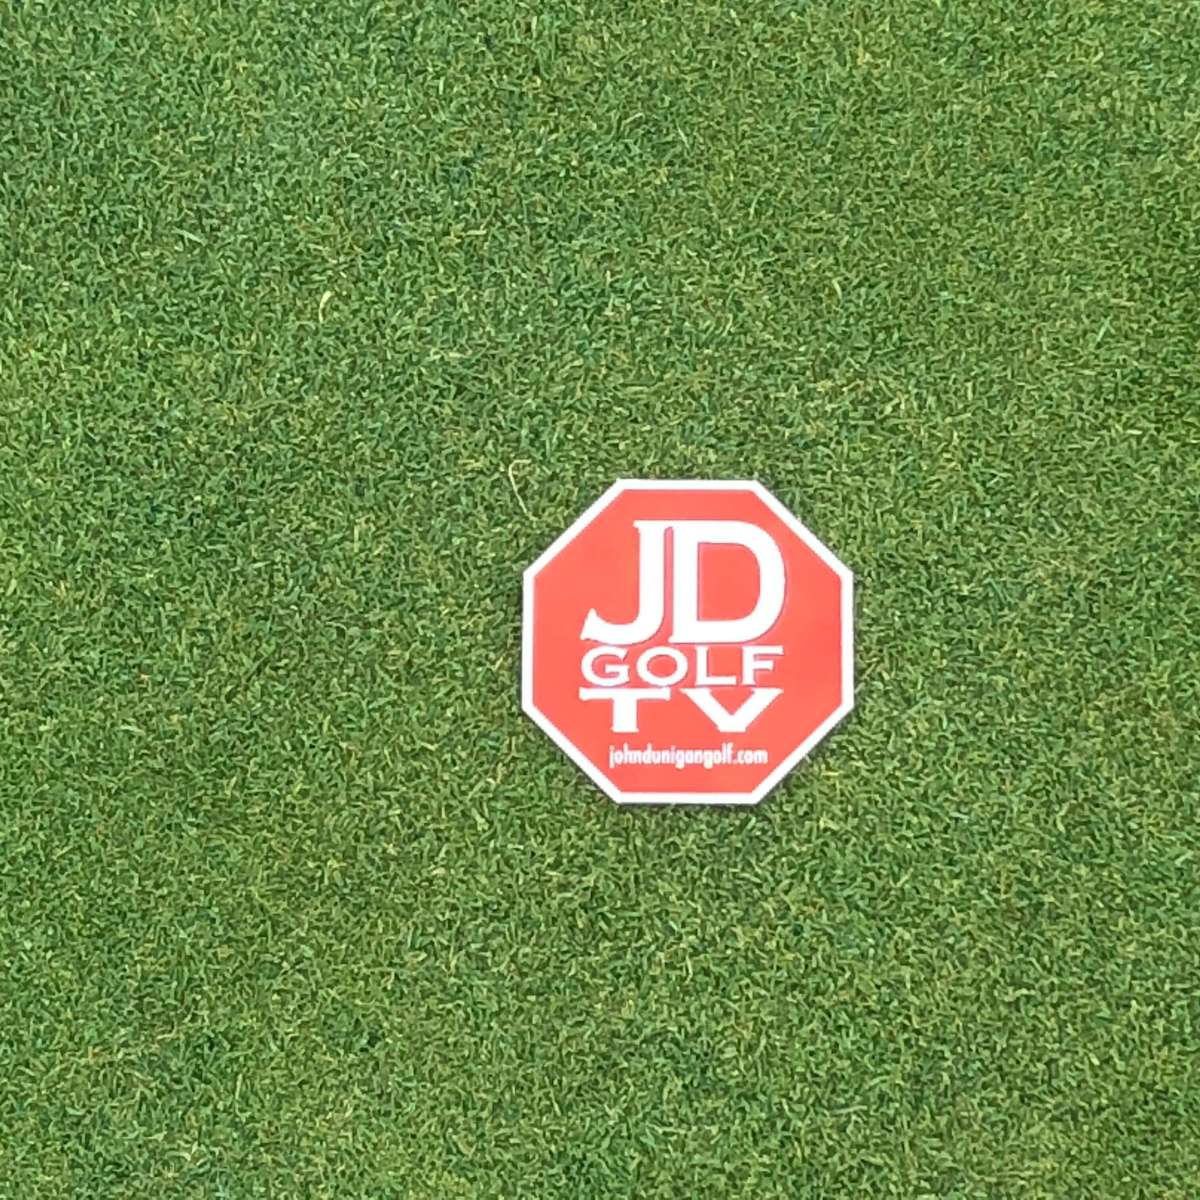 JD Golf TV Stop Signs (3)